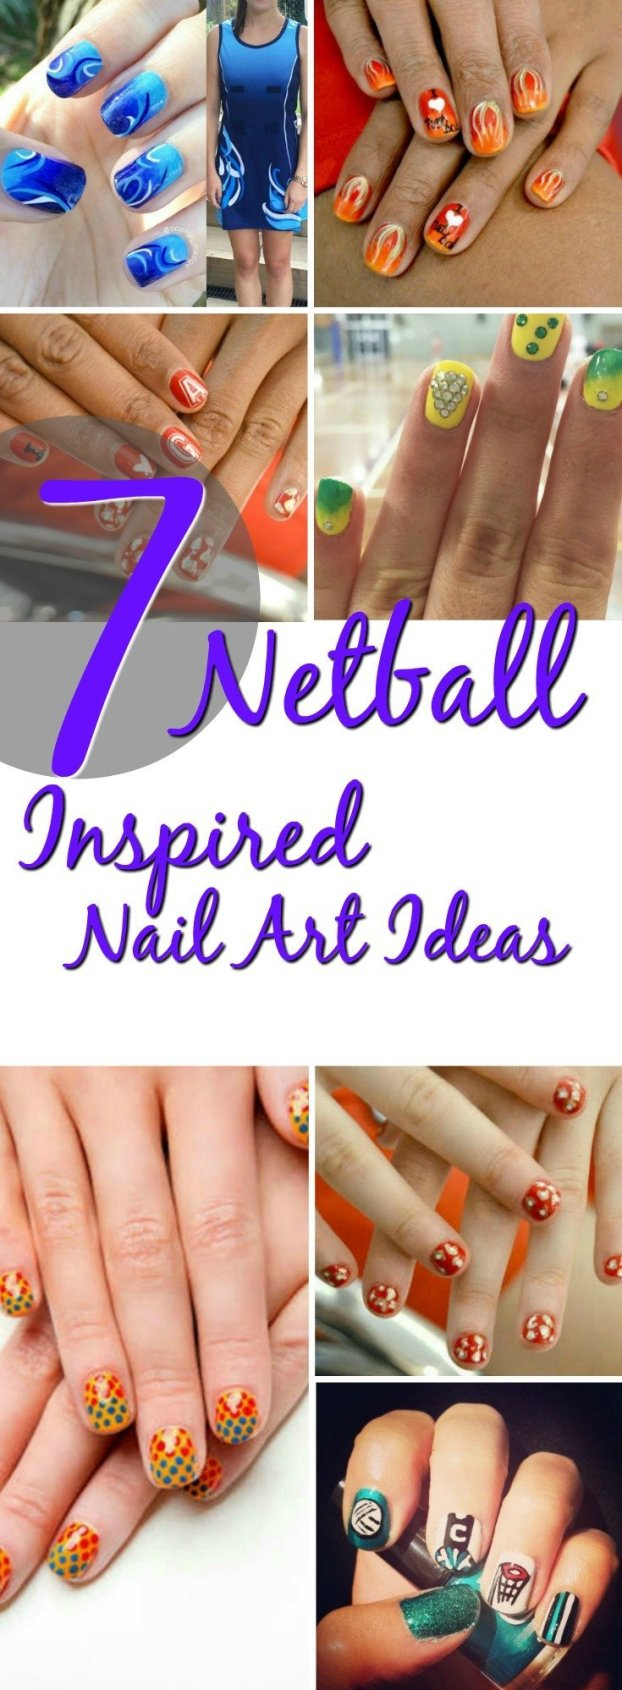 7 netball inspired nail art ideas If you are looking to get your netball fix in other ways here are some awesome netball nail art ideas inspired by the sport and perfect for short nails.